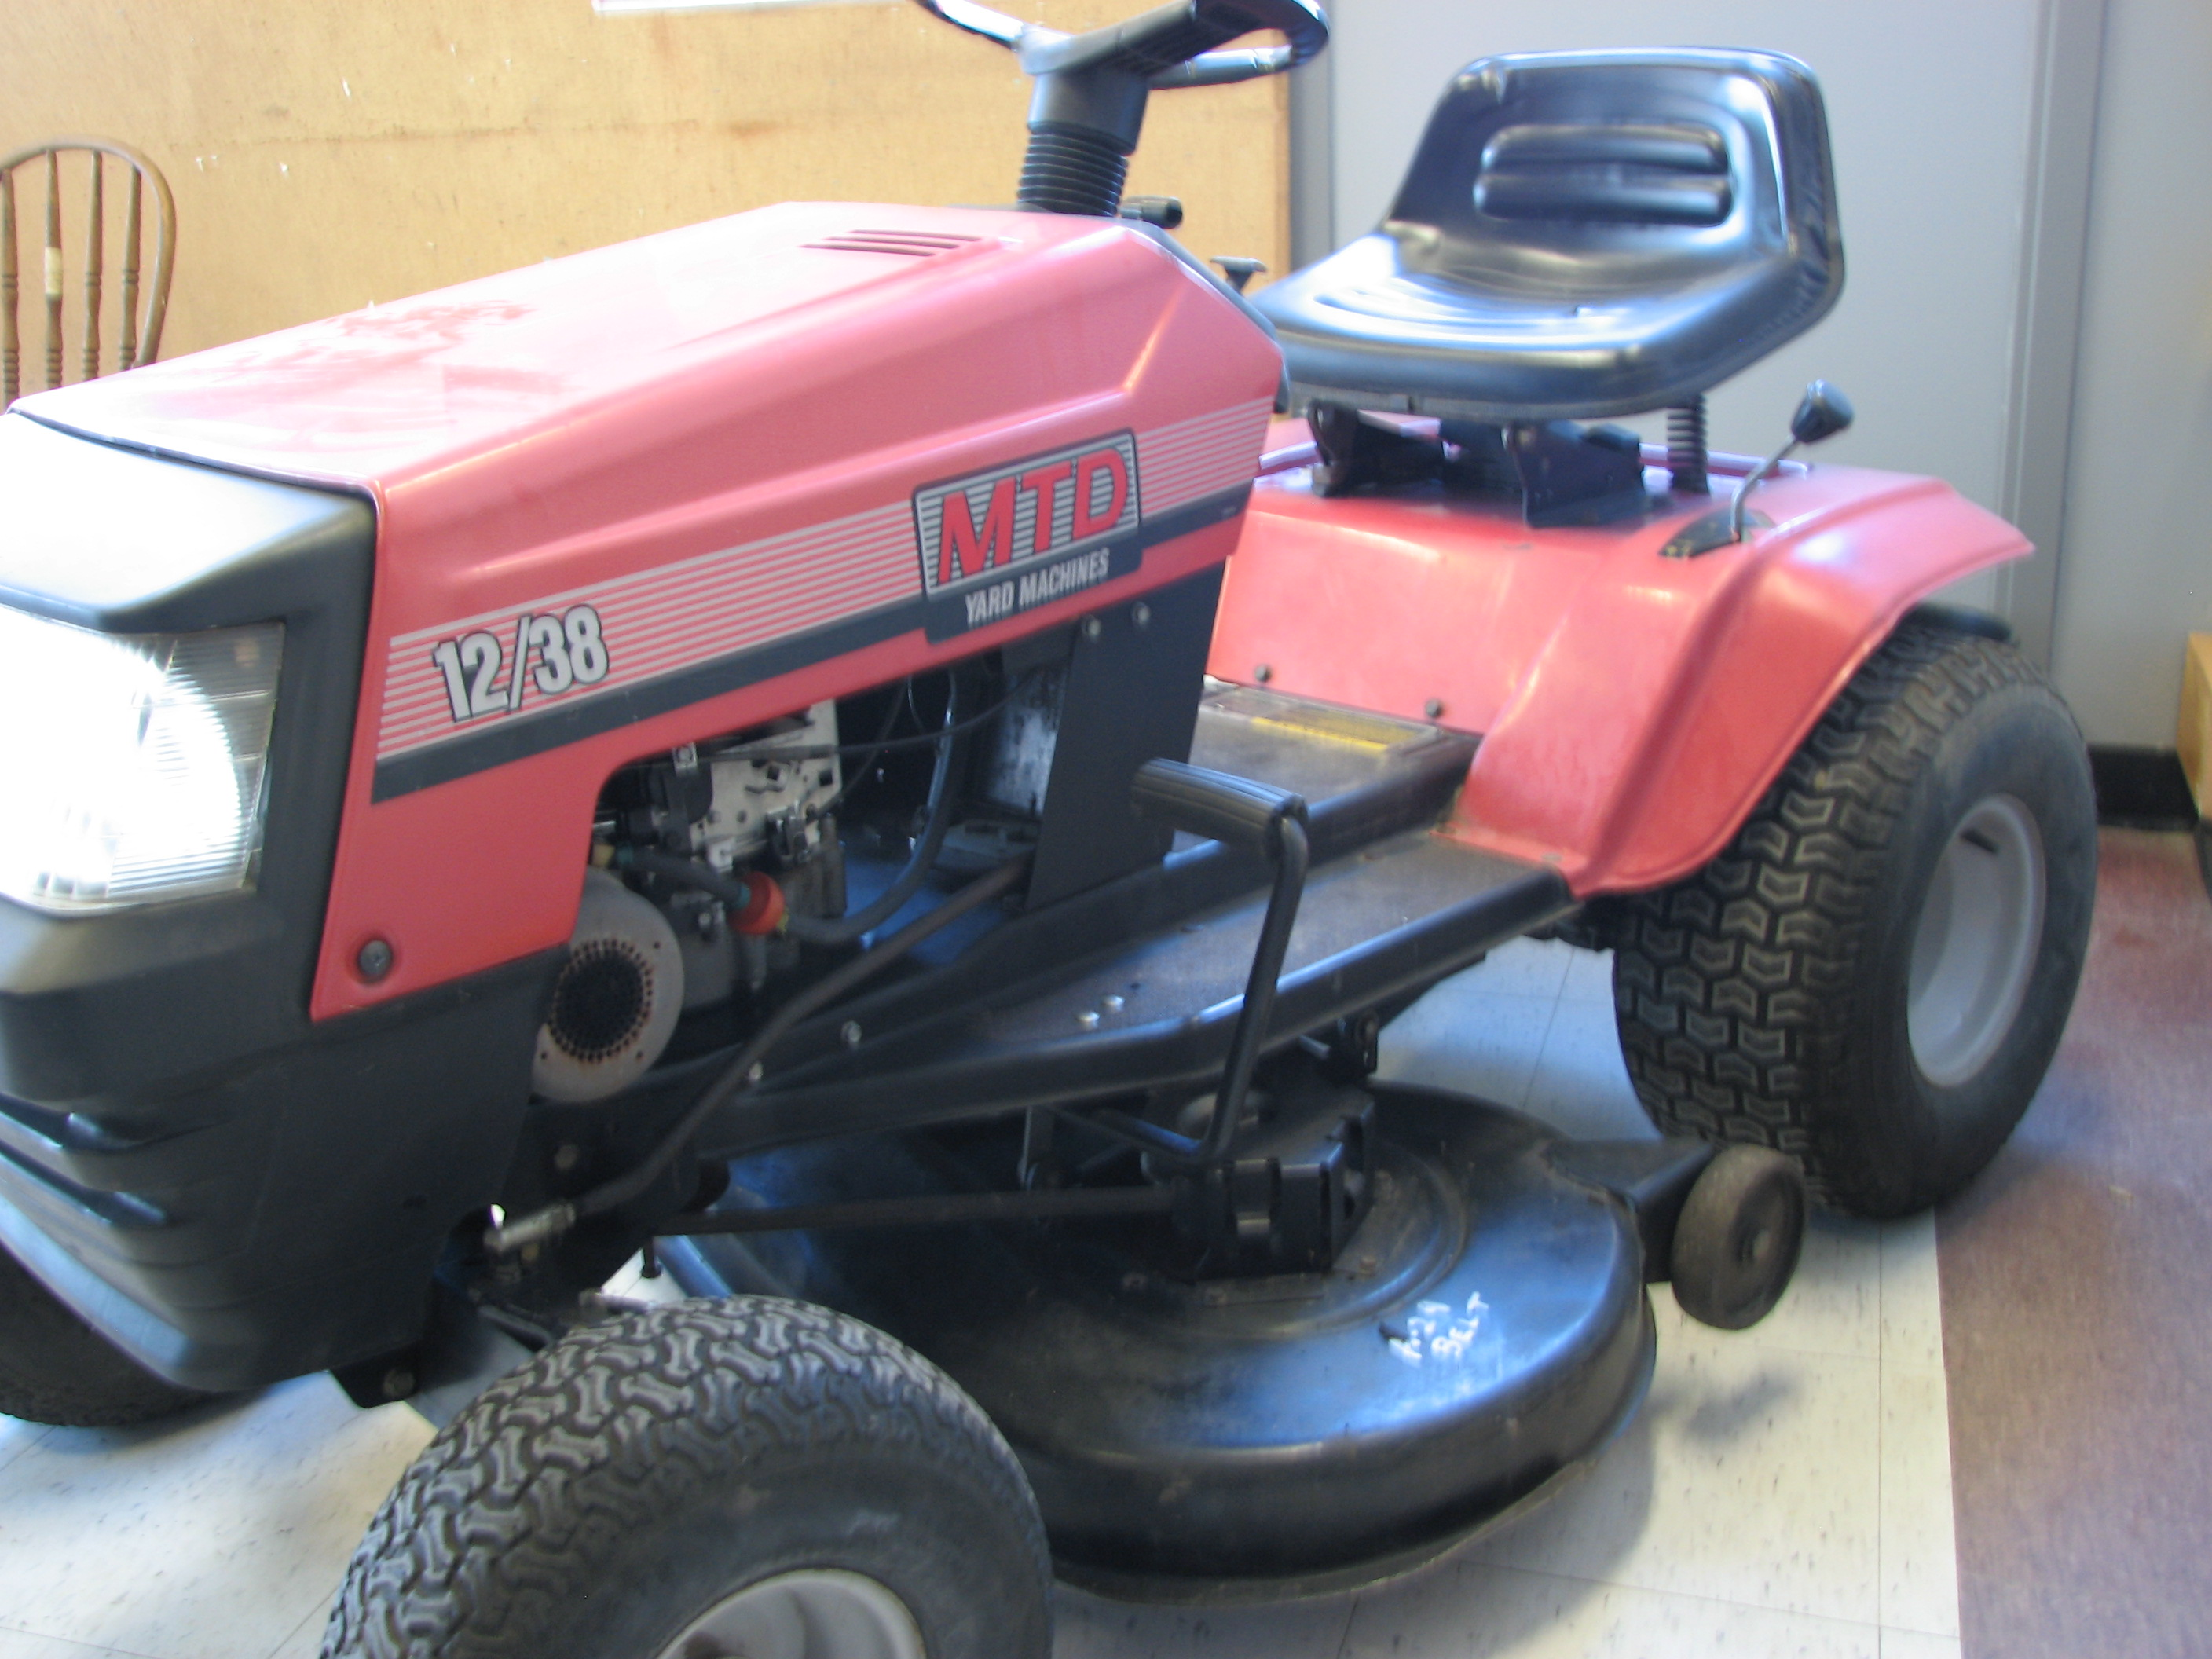 2010 MTD Riding Tractor Mower